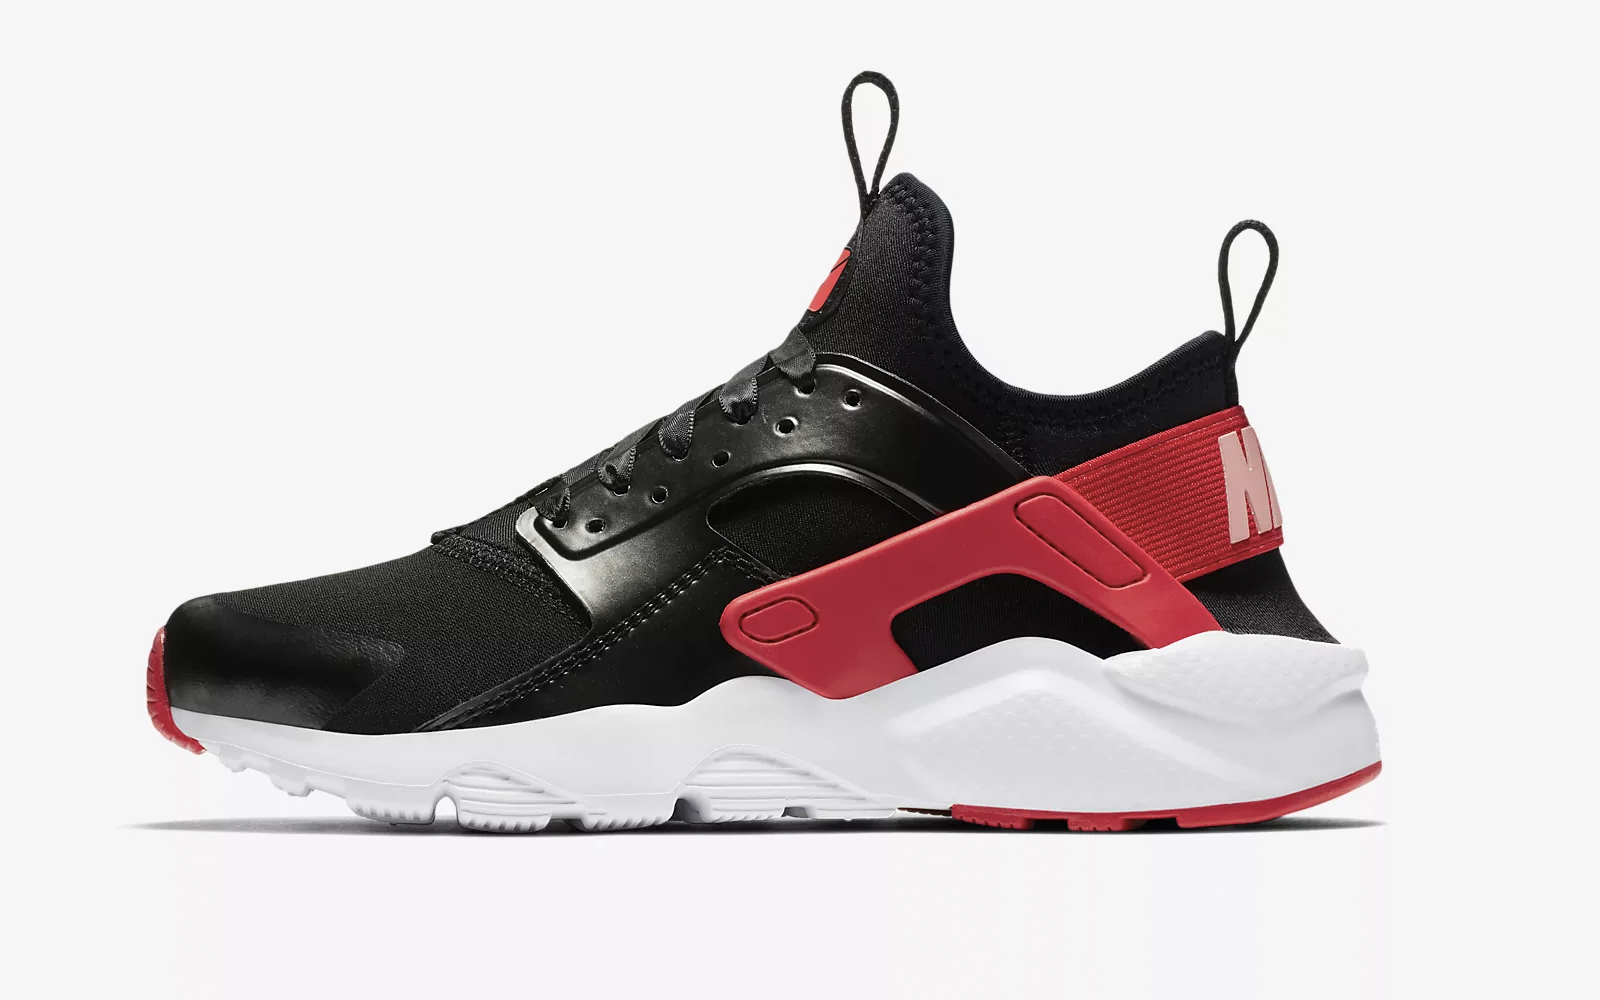 Nike Air Huarache Run Ultra QS